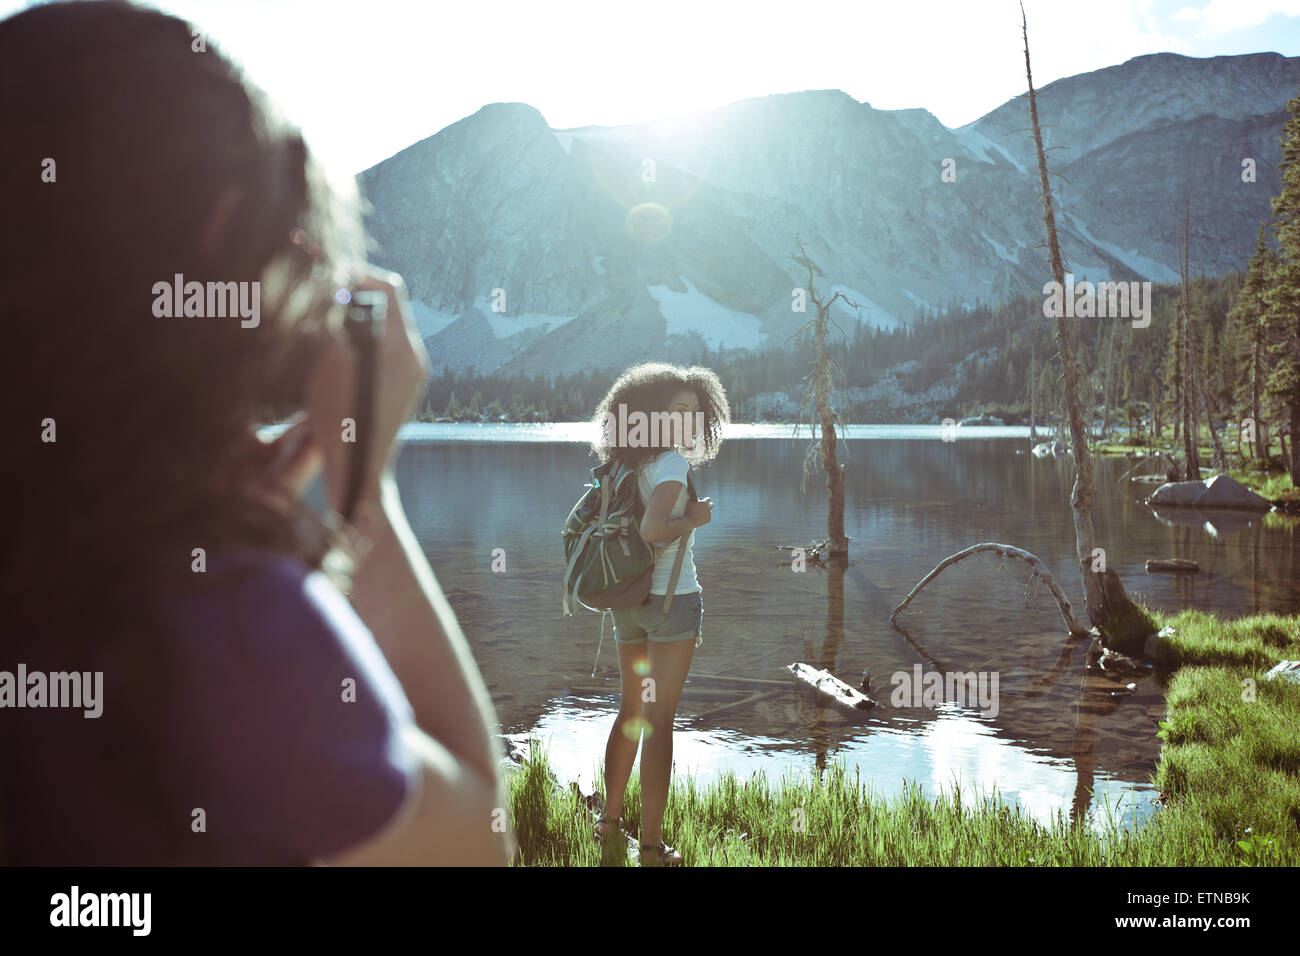 Woman taking a photo of another woman standing by a lake, Wyoming, USA - Stock Image